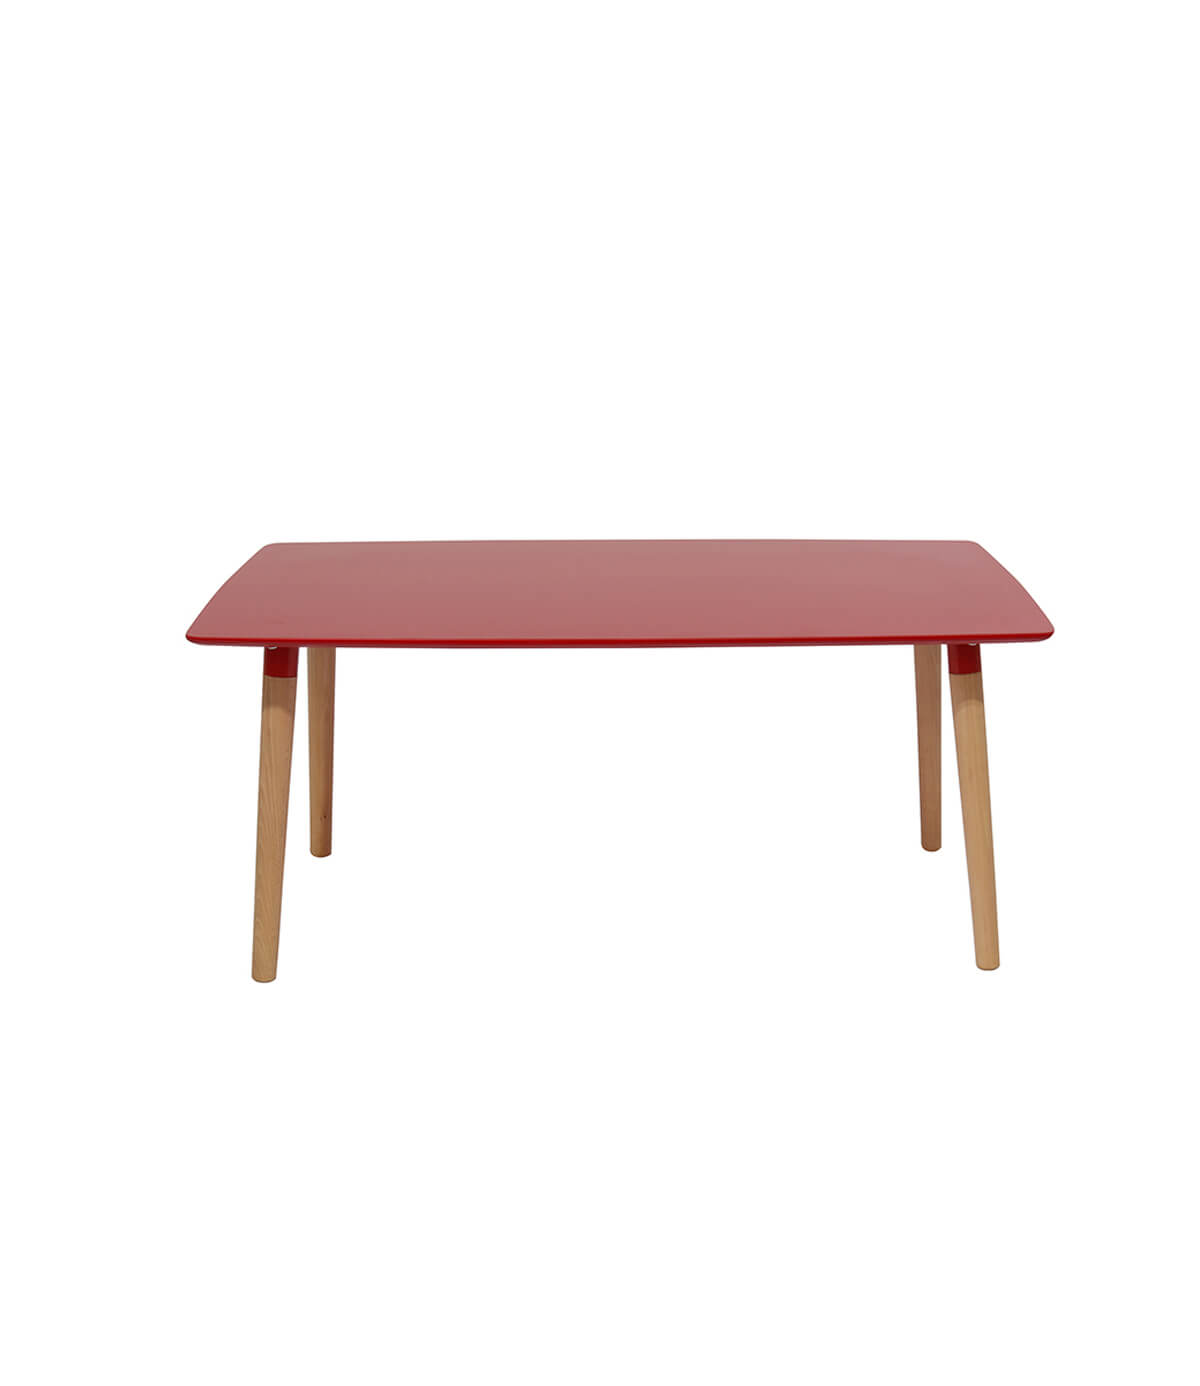 Naples Red Wooden Coffee Table Manchester Furniture Supplies